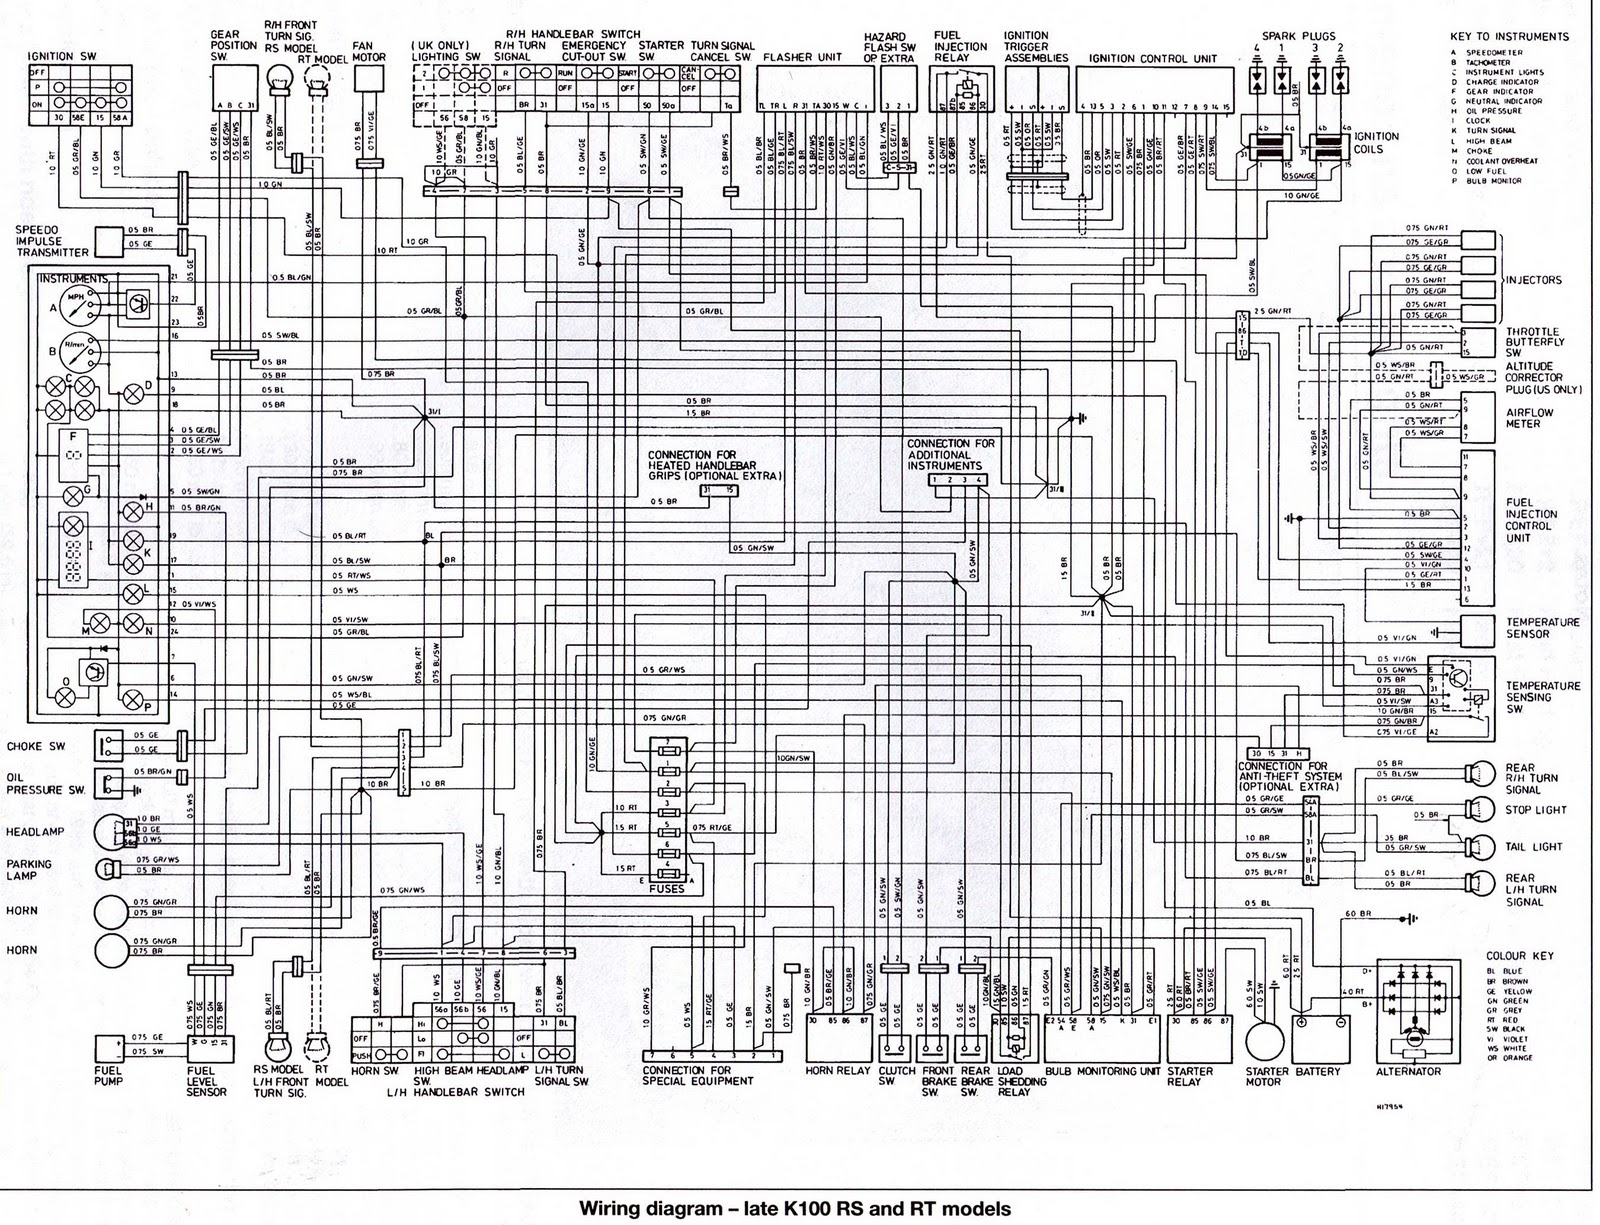 BMW+KR100RS RT+Wiring+Diagram bmw e38 wiring diagram bmw wds download \u2022 free wiring diagrams bmw e38 radio wiring diagram at mifinder.co